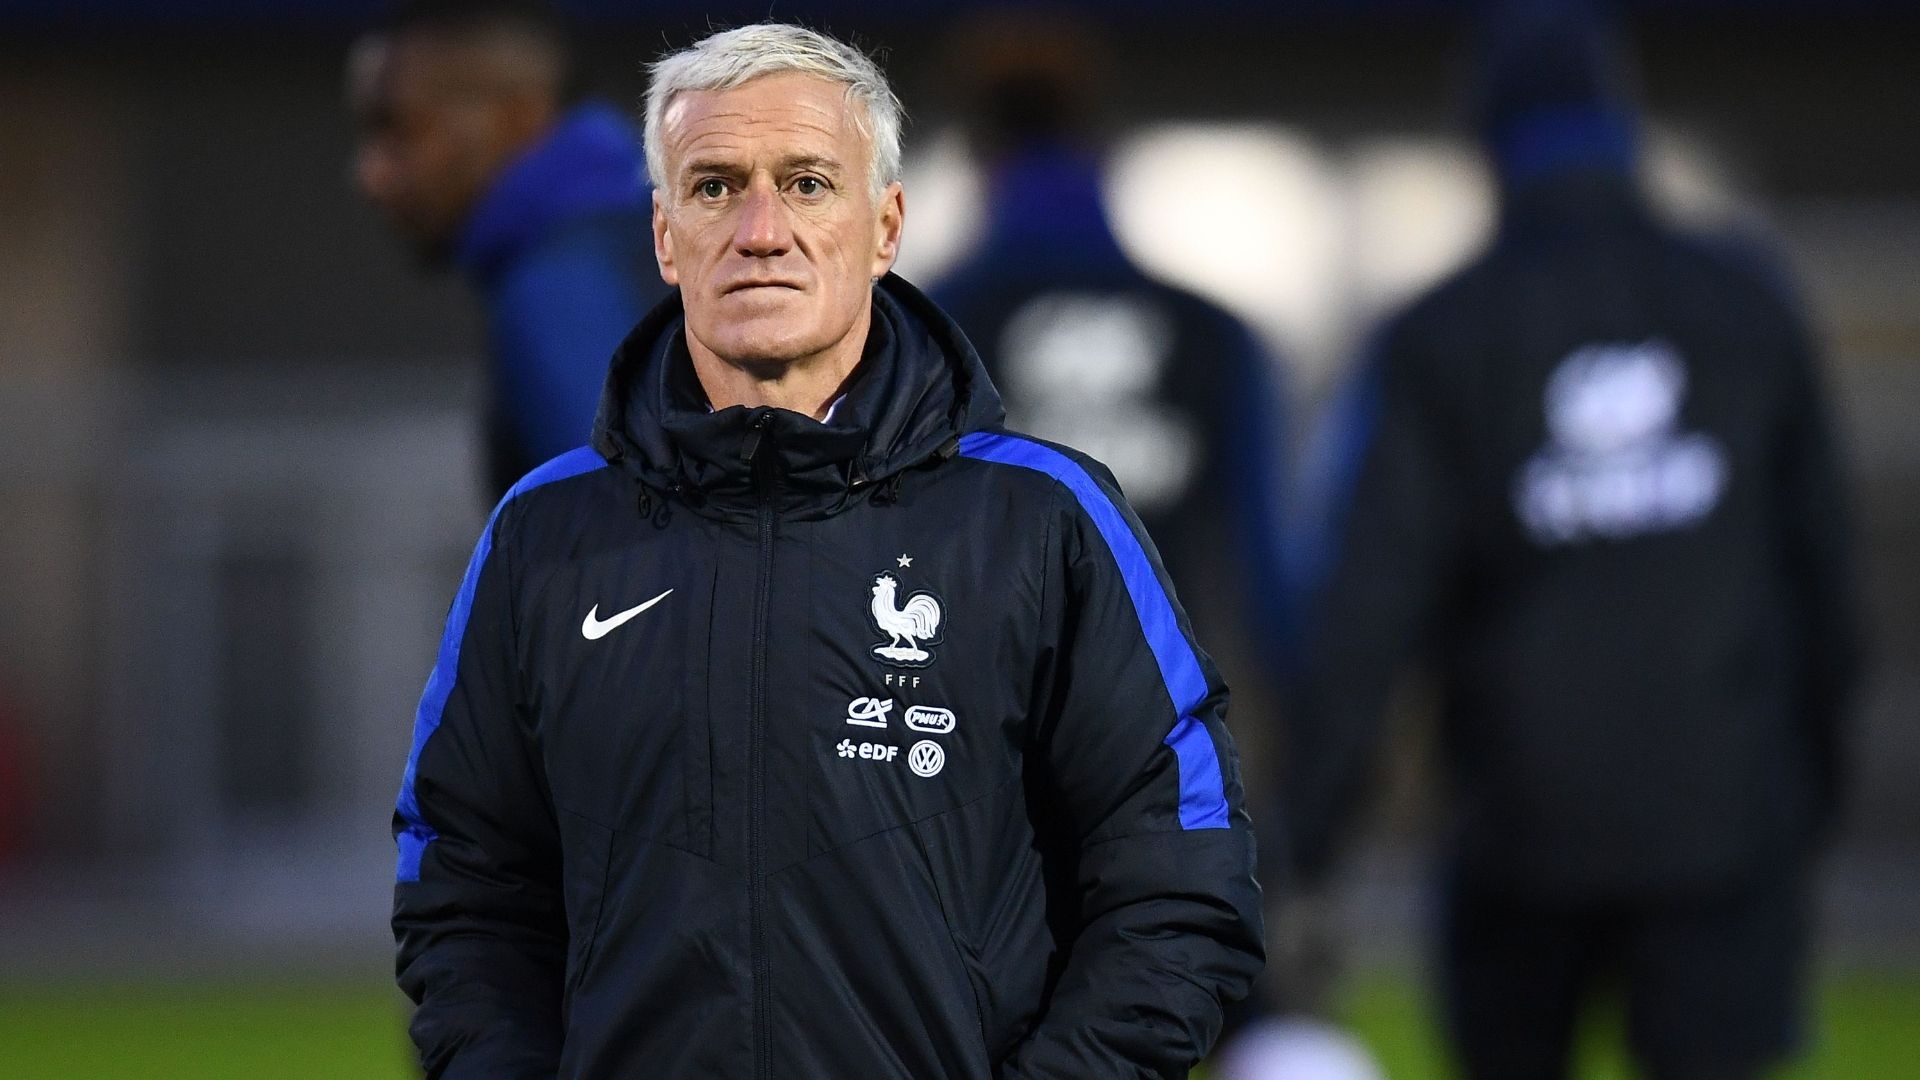 Why Didier Deschamps went for youth over experience for France     Why Didier Deschamps went for youth over experience for France